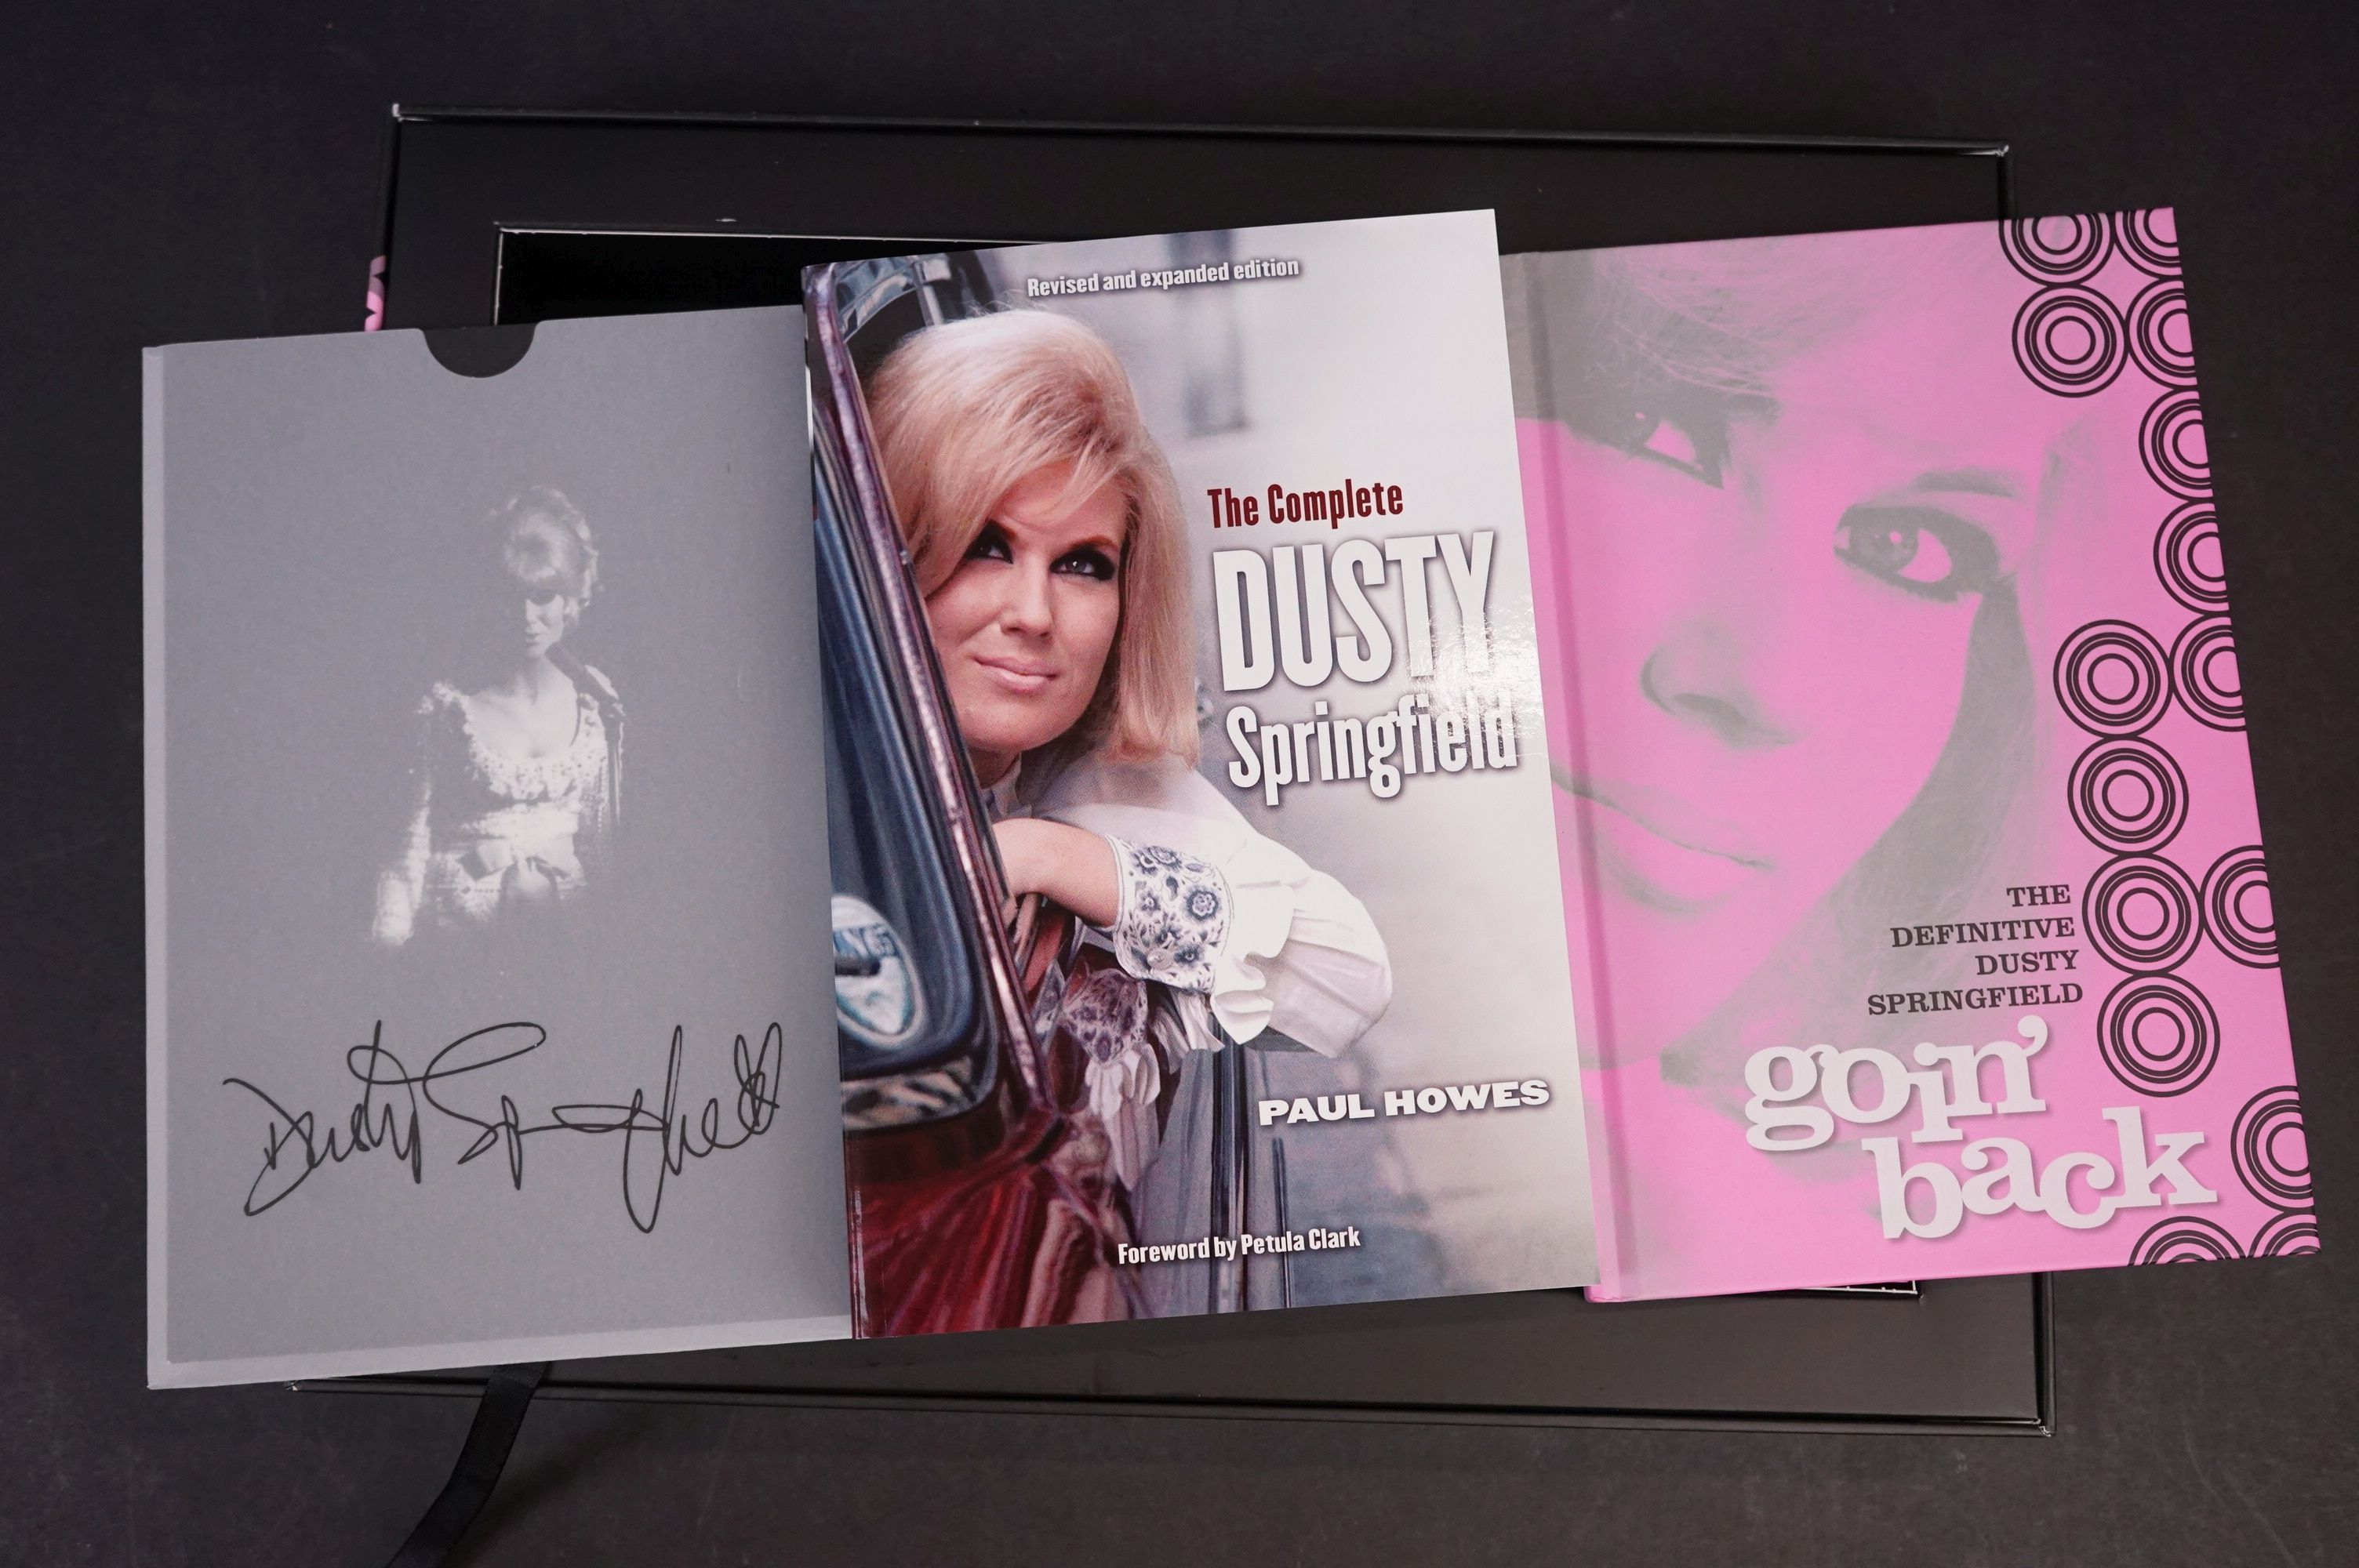 CD / DVD - Dusty Springfield Goin' Back The Definitive Box Set, ltd edn number 00128, ex with some - Image 3 of 8